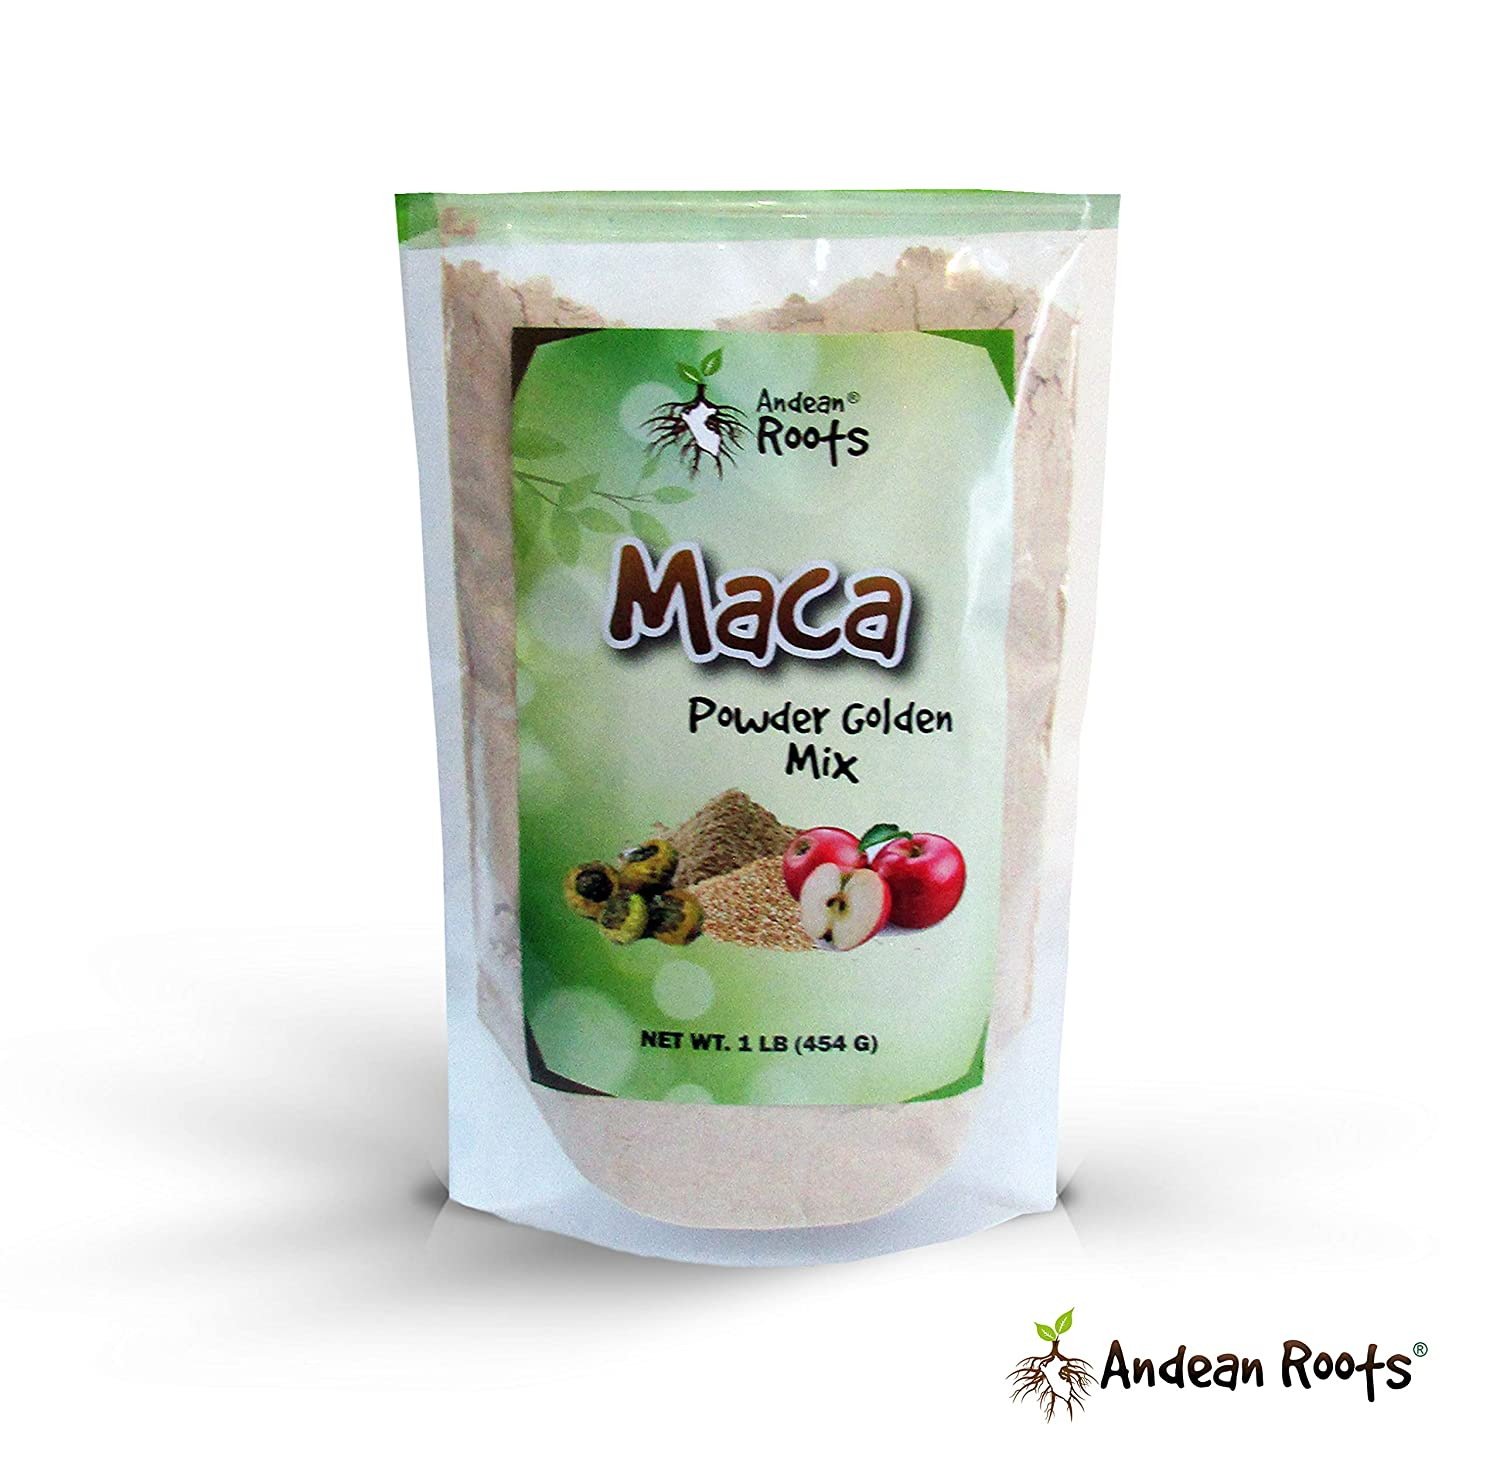 Amazon.com: Andean Roots Peruvian Maca Powder Golden Mix, Gelatinized 1 lb Bag: Health & Personal Care